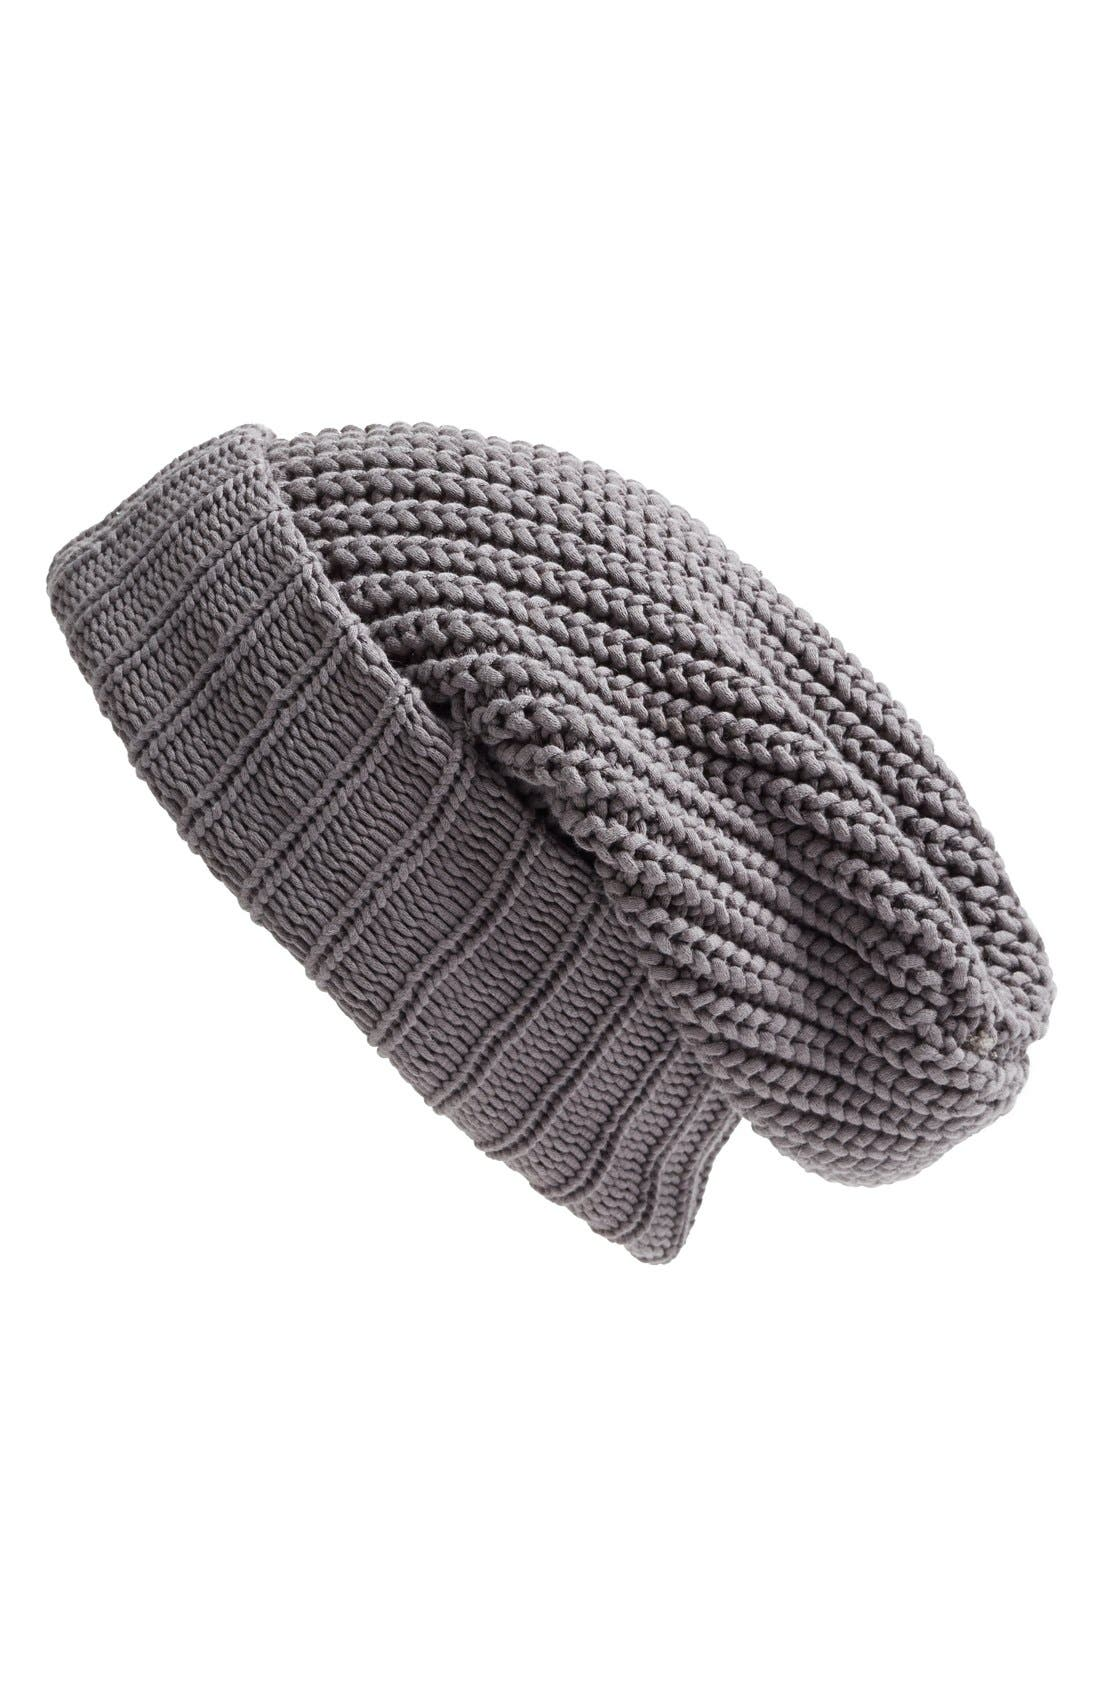 Alternate Image 1 Selected - Treasure&Bond Chunky Cuffed Beanie